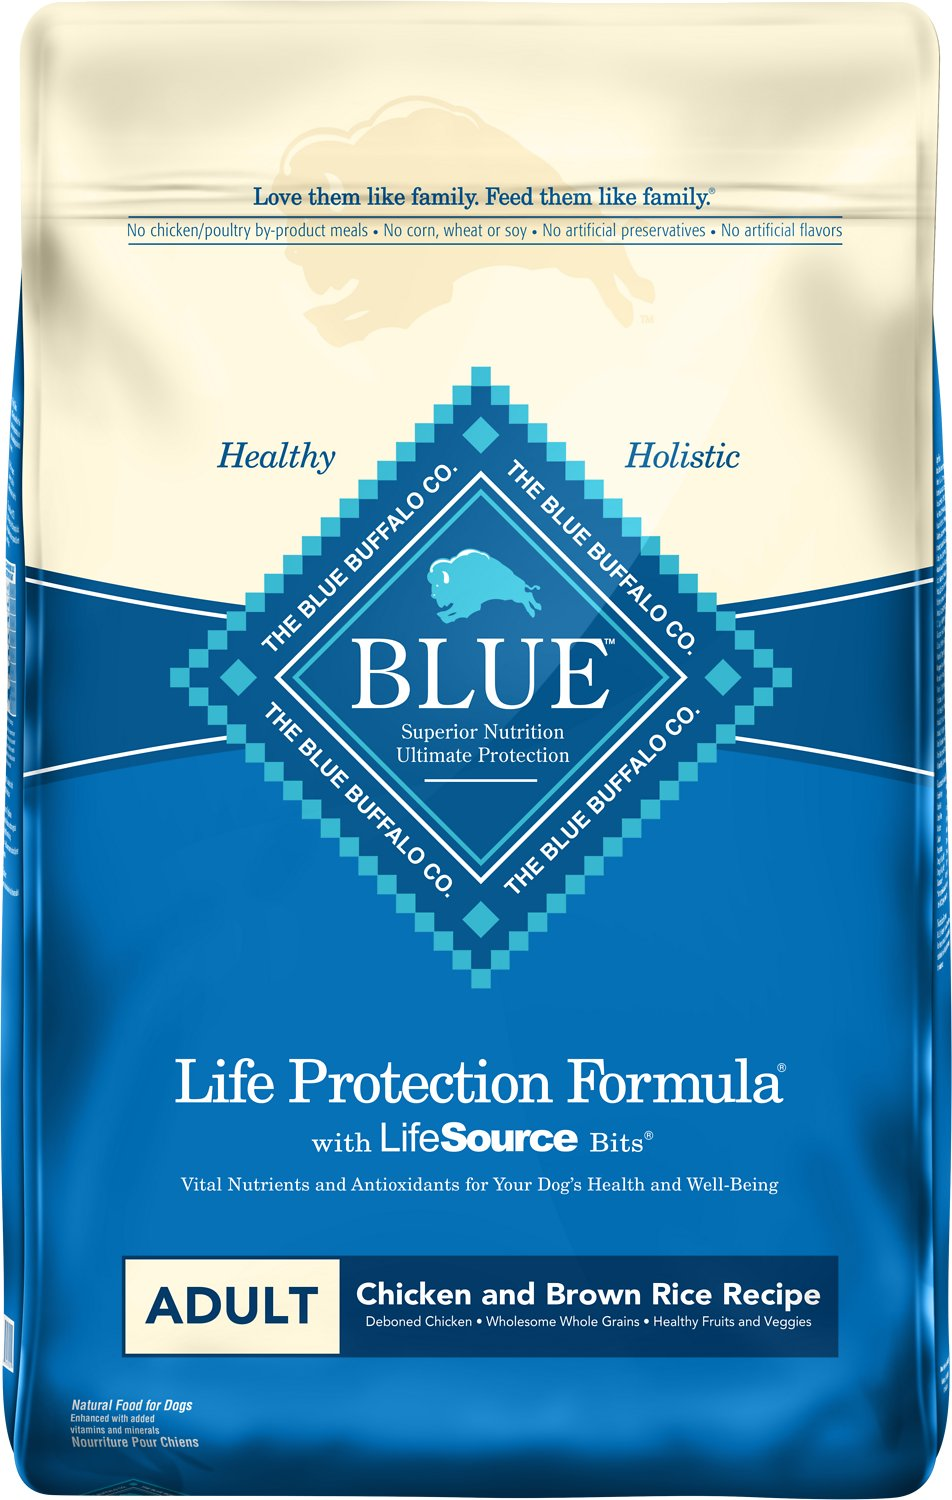 Blue Buffalo Life Protection Formula Adult Chicken & Brown Rice Recipe Dry Dog Food Image